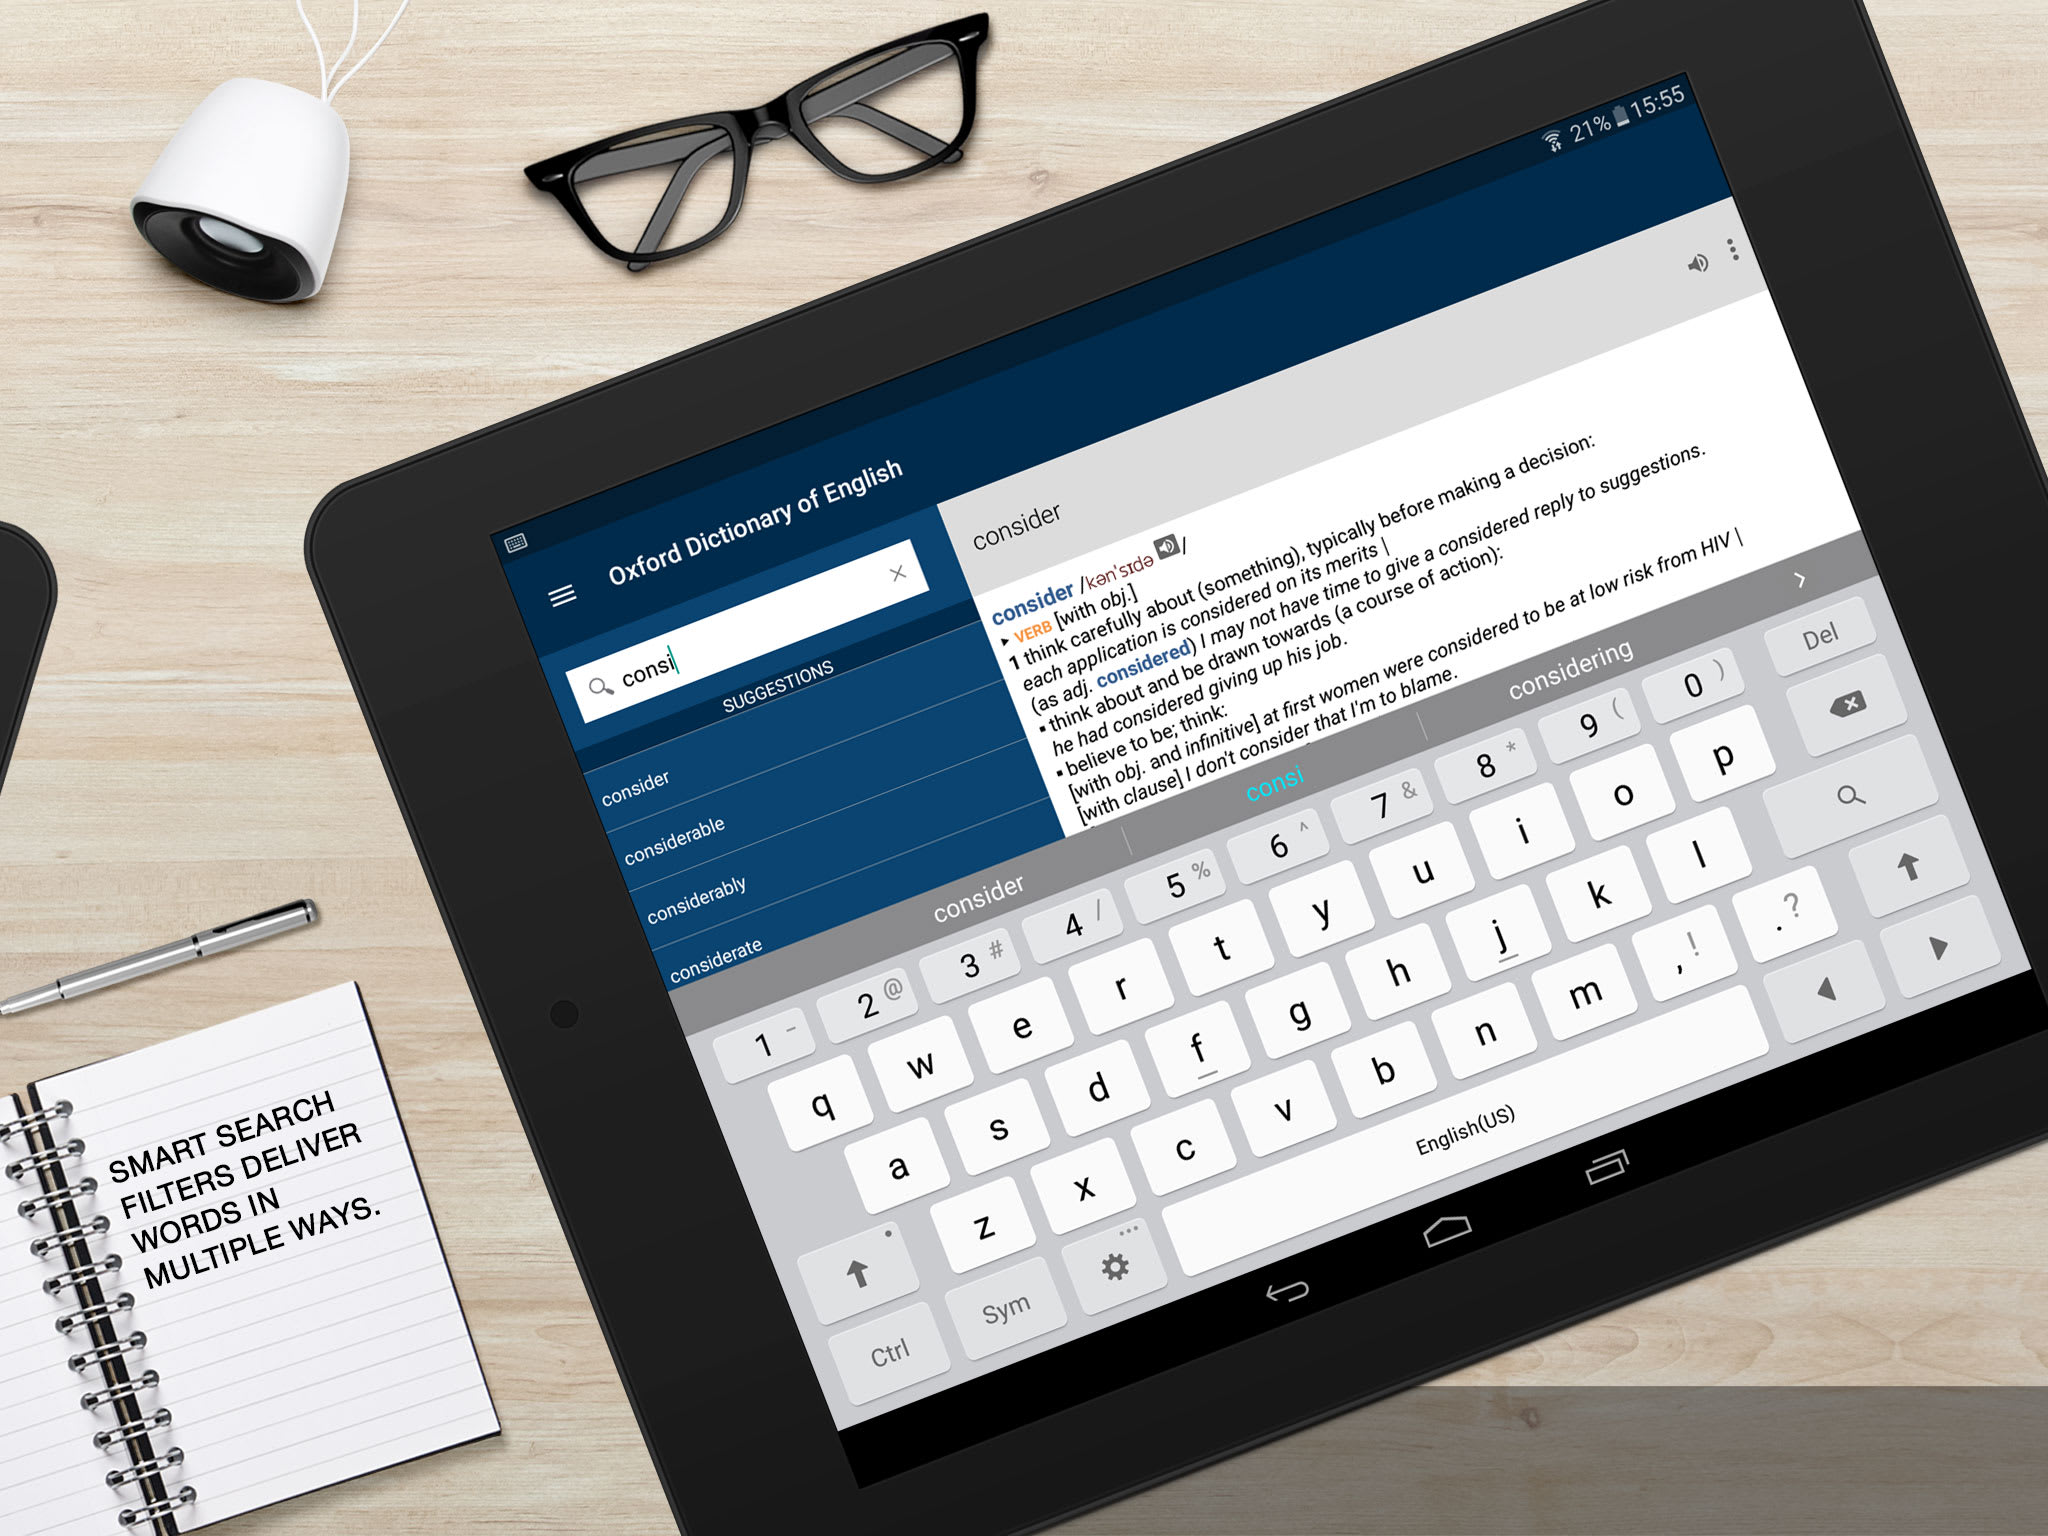 Oxford Dictionary Free Download Full Version For Pc With